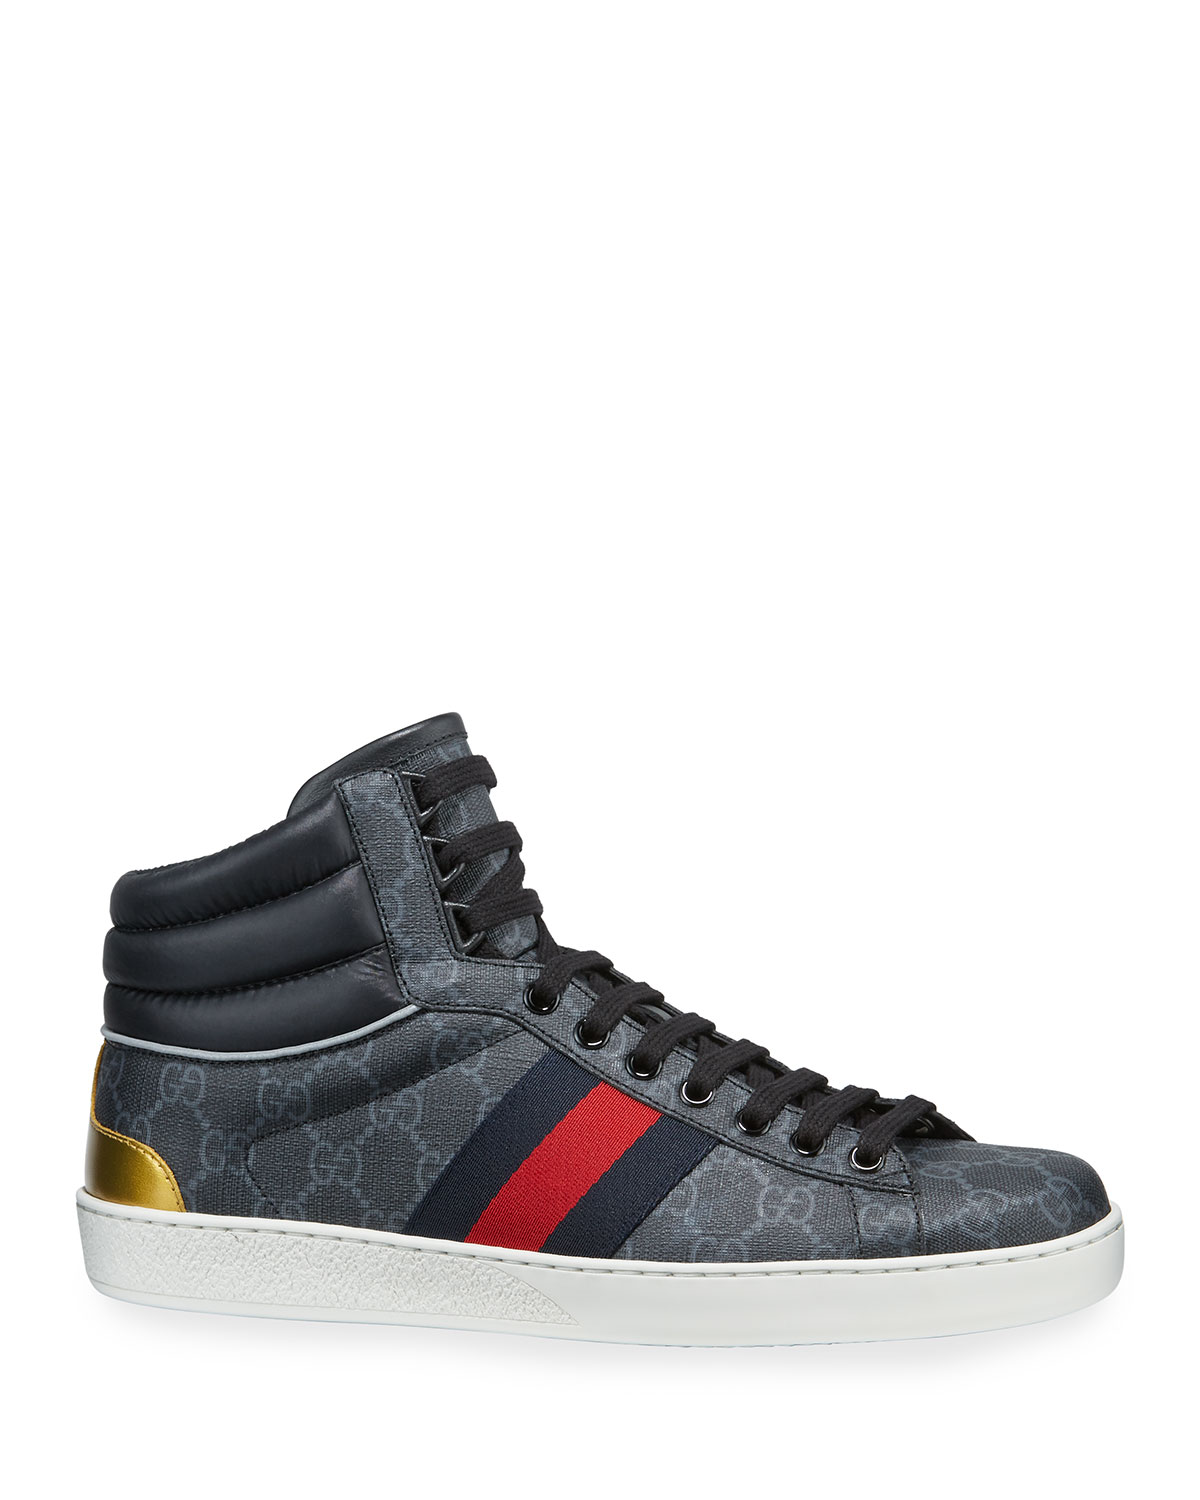 323104a59c4 Gucci Men s Ace GG Canvas High-Top Sneakers